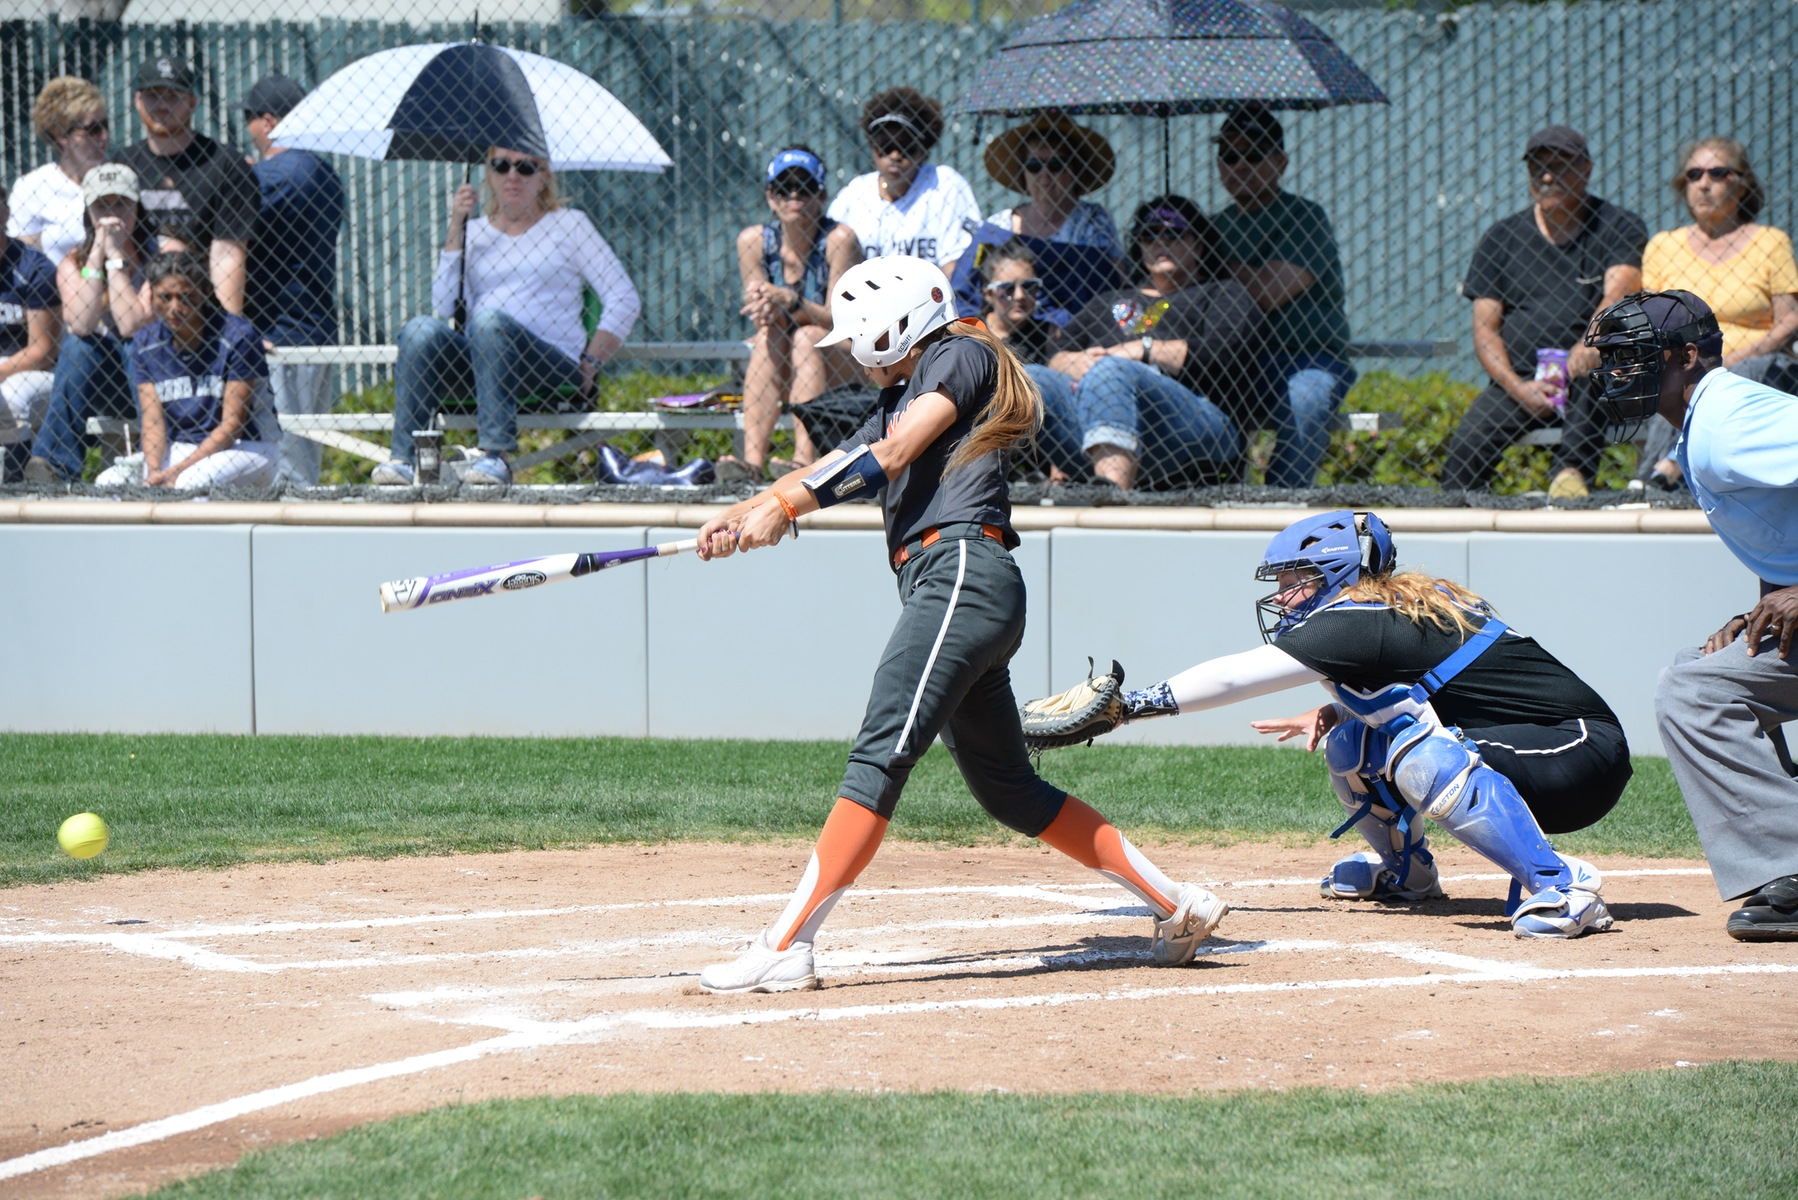 Giants set to travel to Ohlone for postseason regional